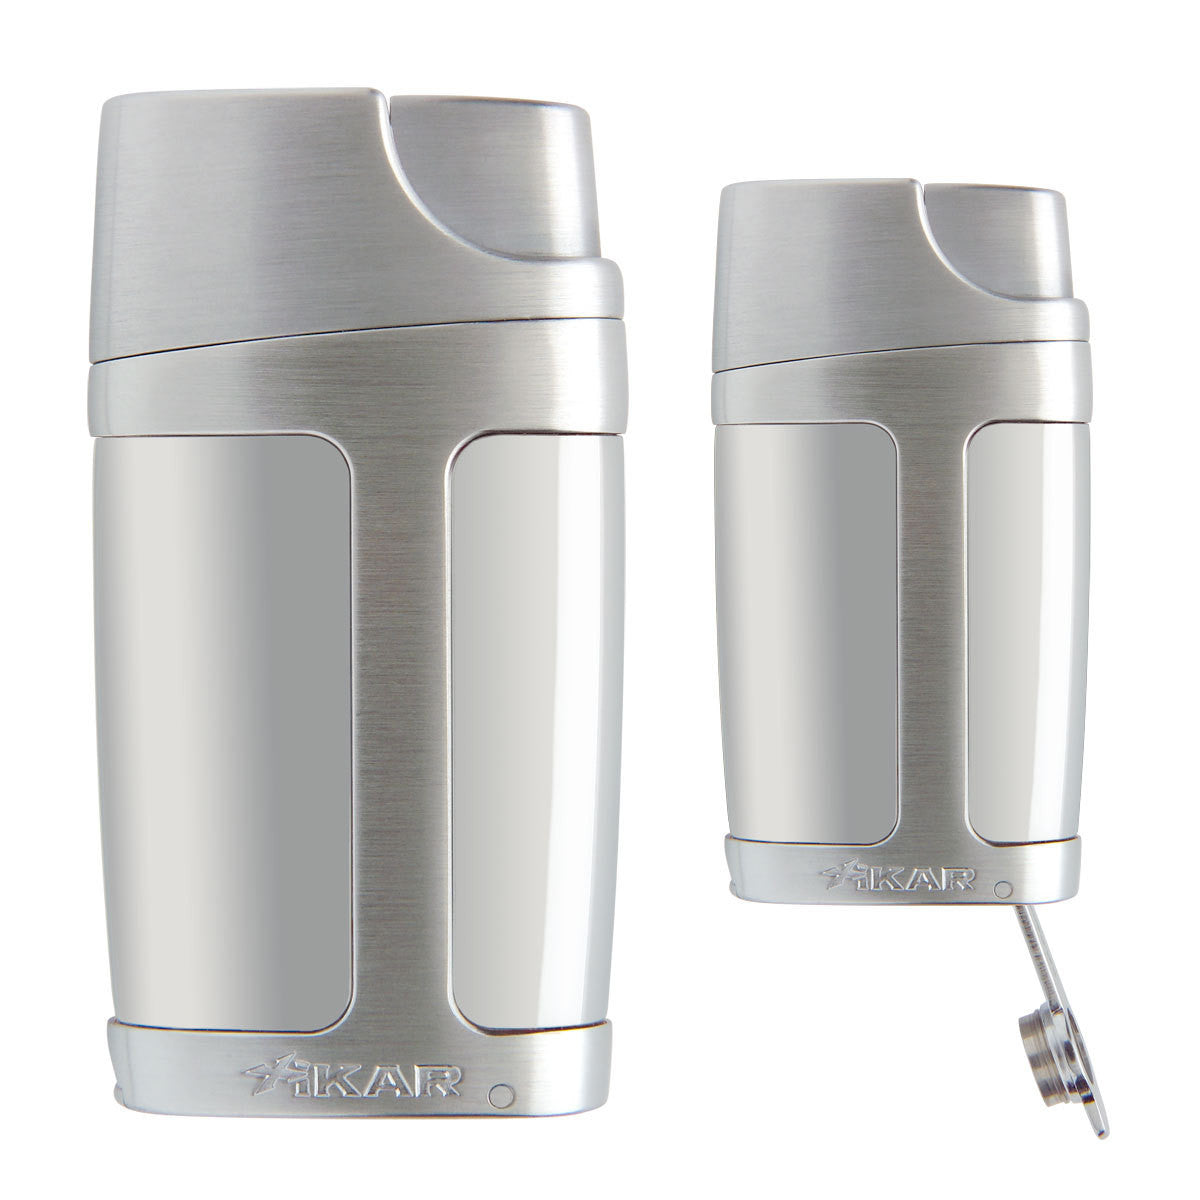 Xikar Element Lighter Chrome Silver - Humidors Wholesaler